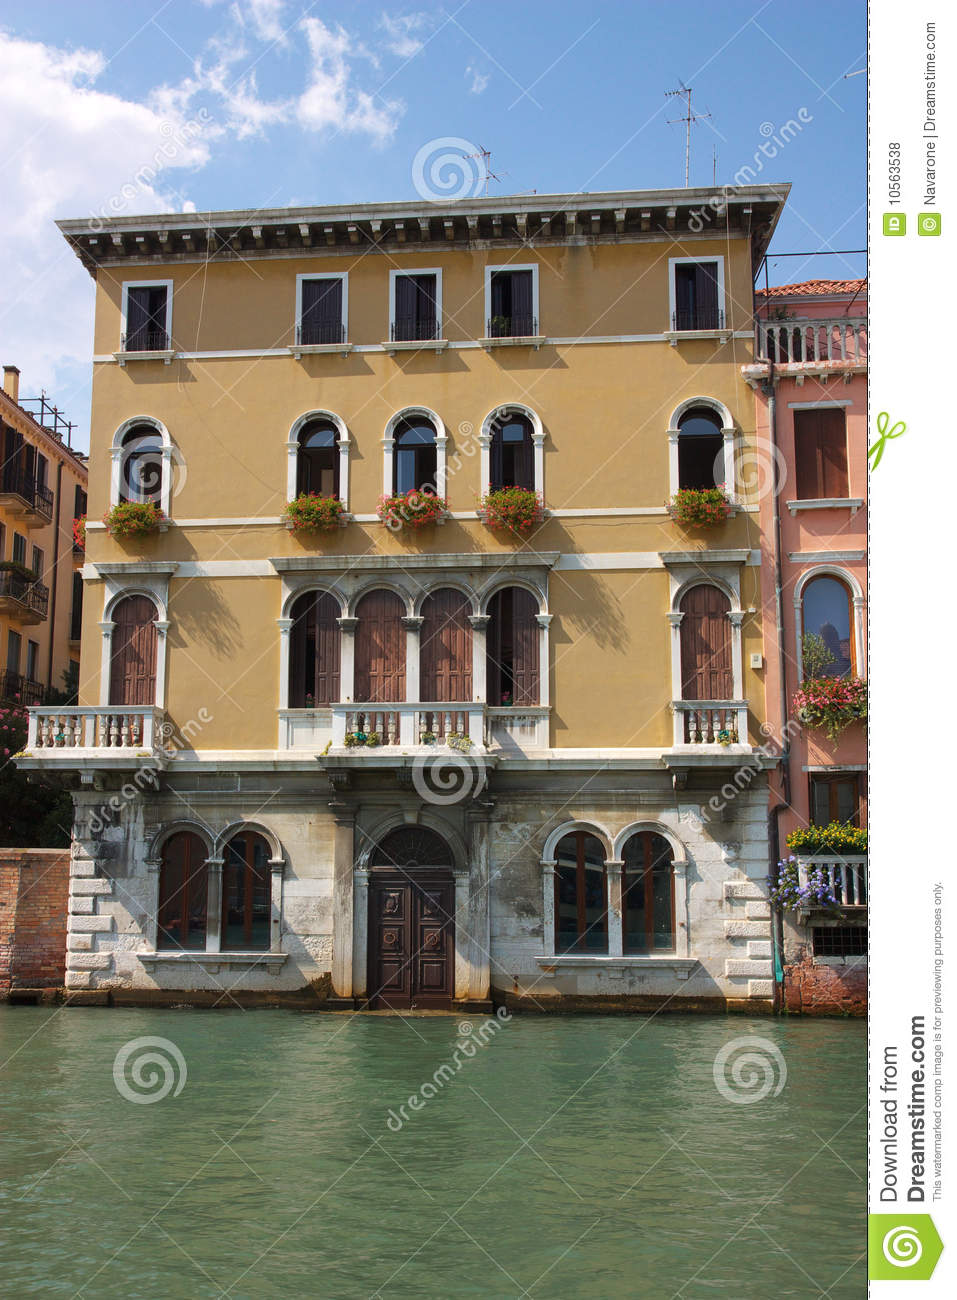 House in venice italy stock photo image of outdoor for Italianhouse